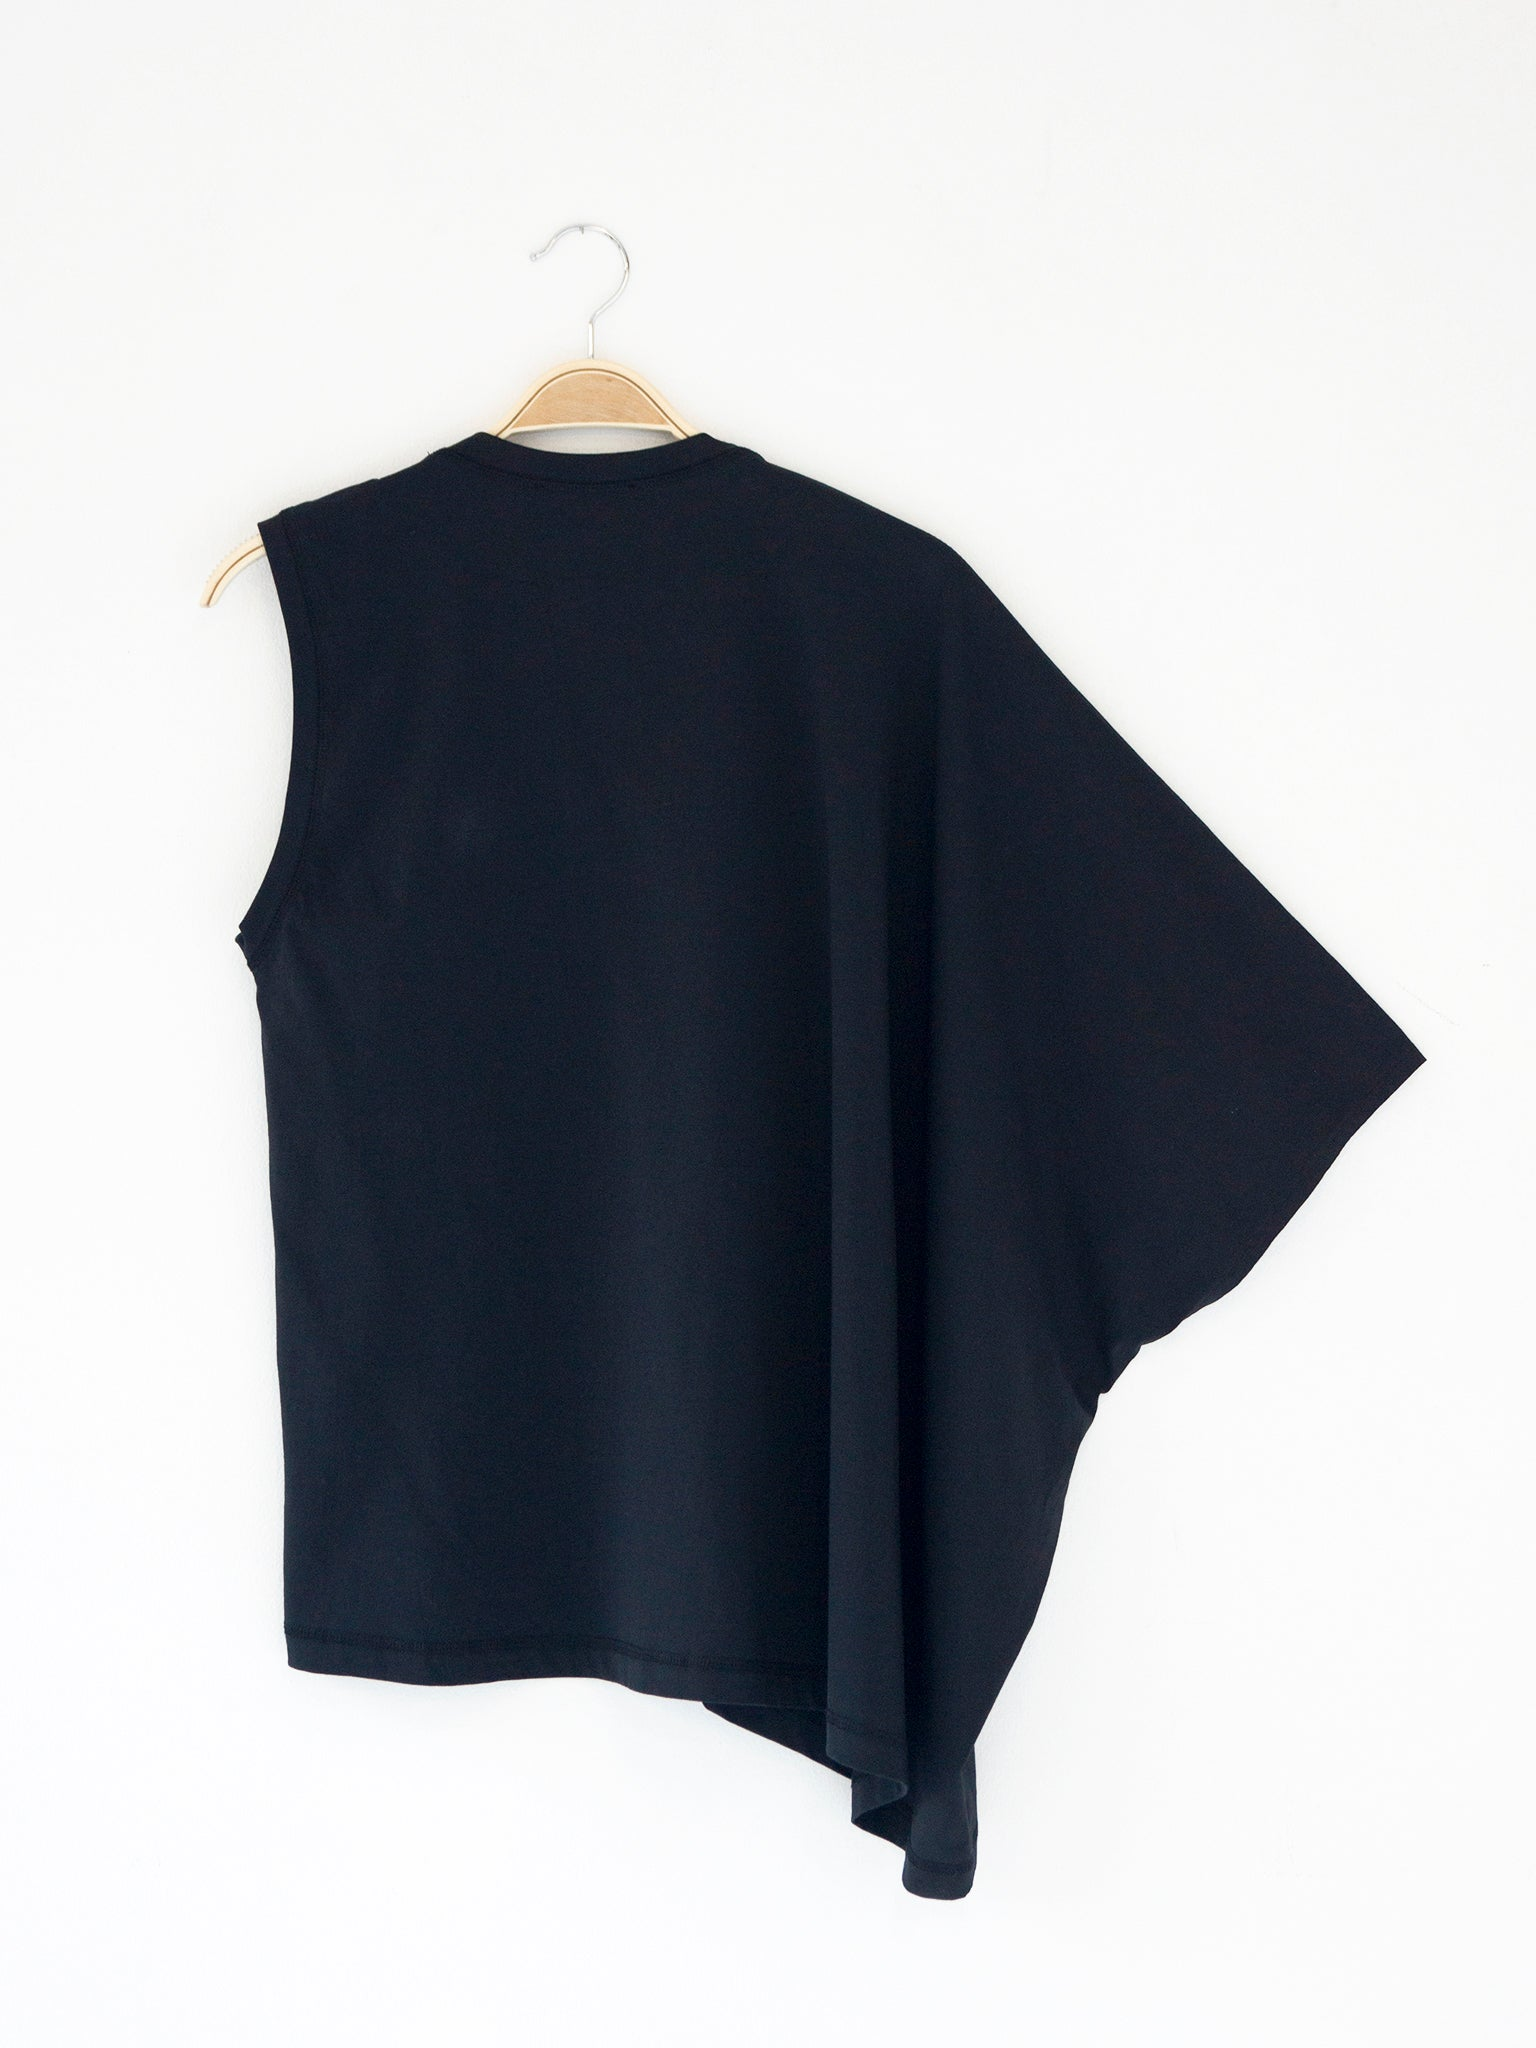 Reality Studio Circle Top Black